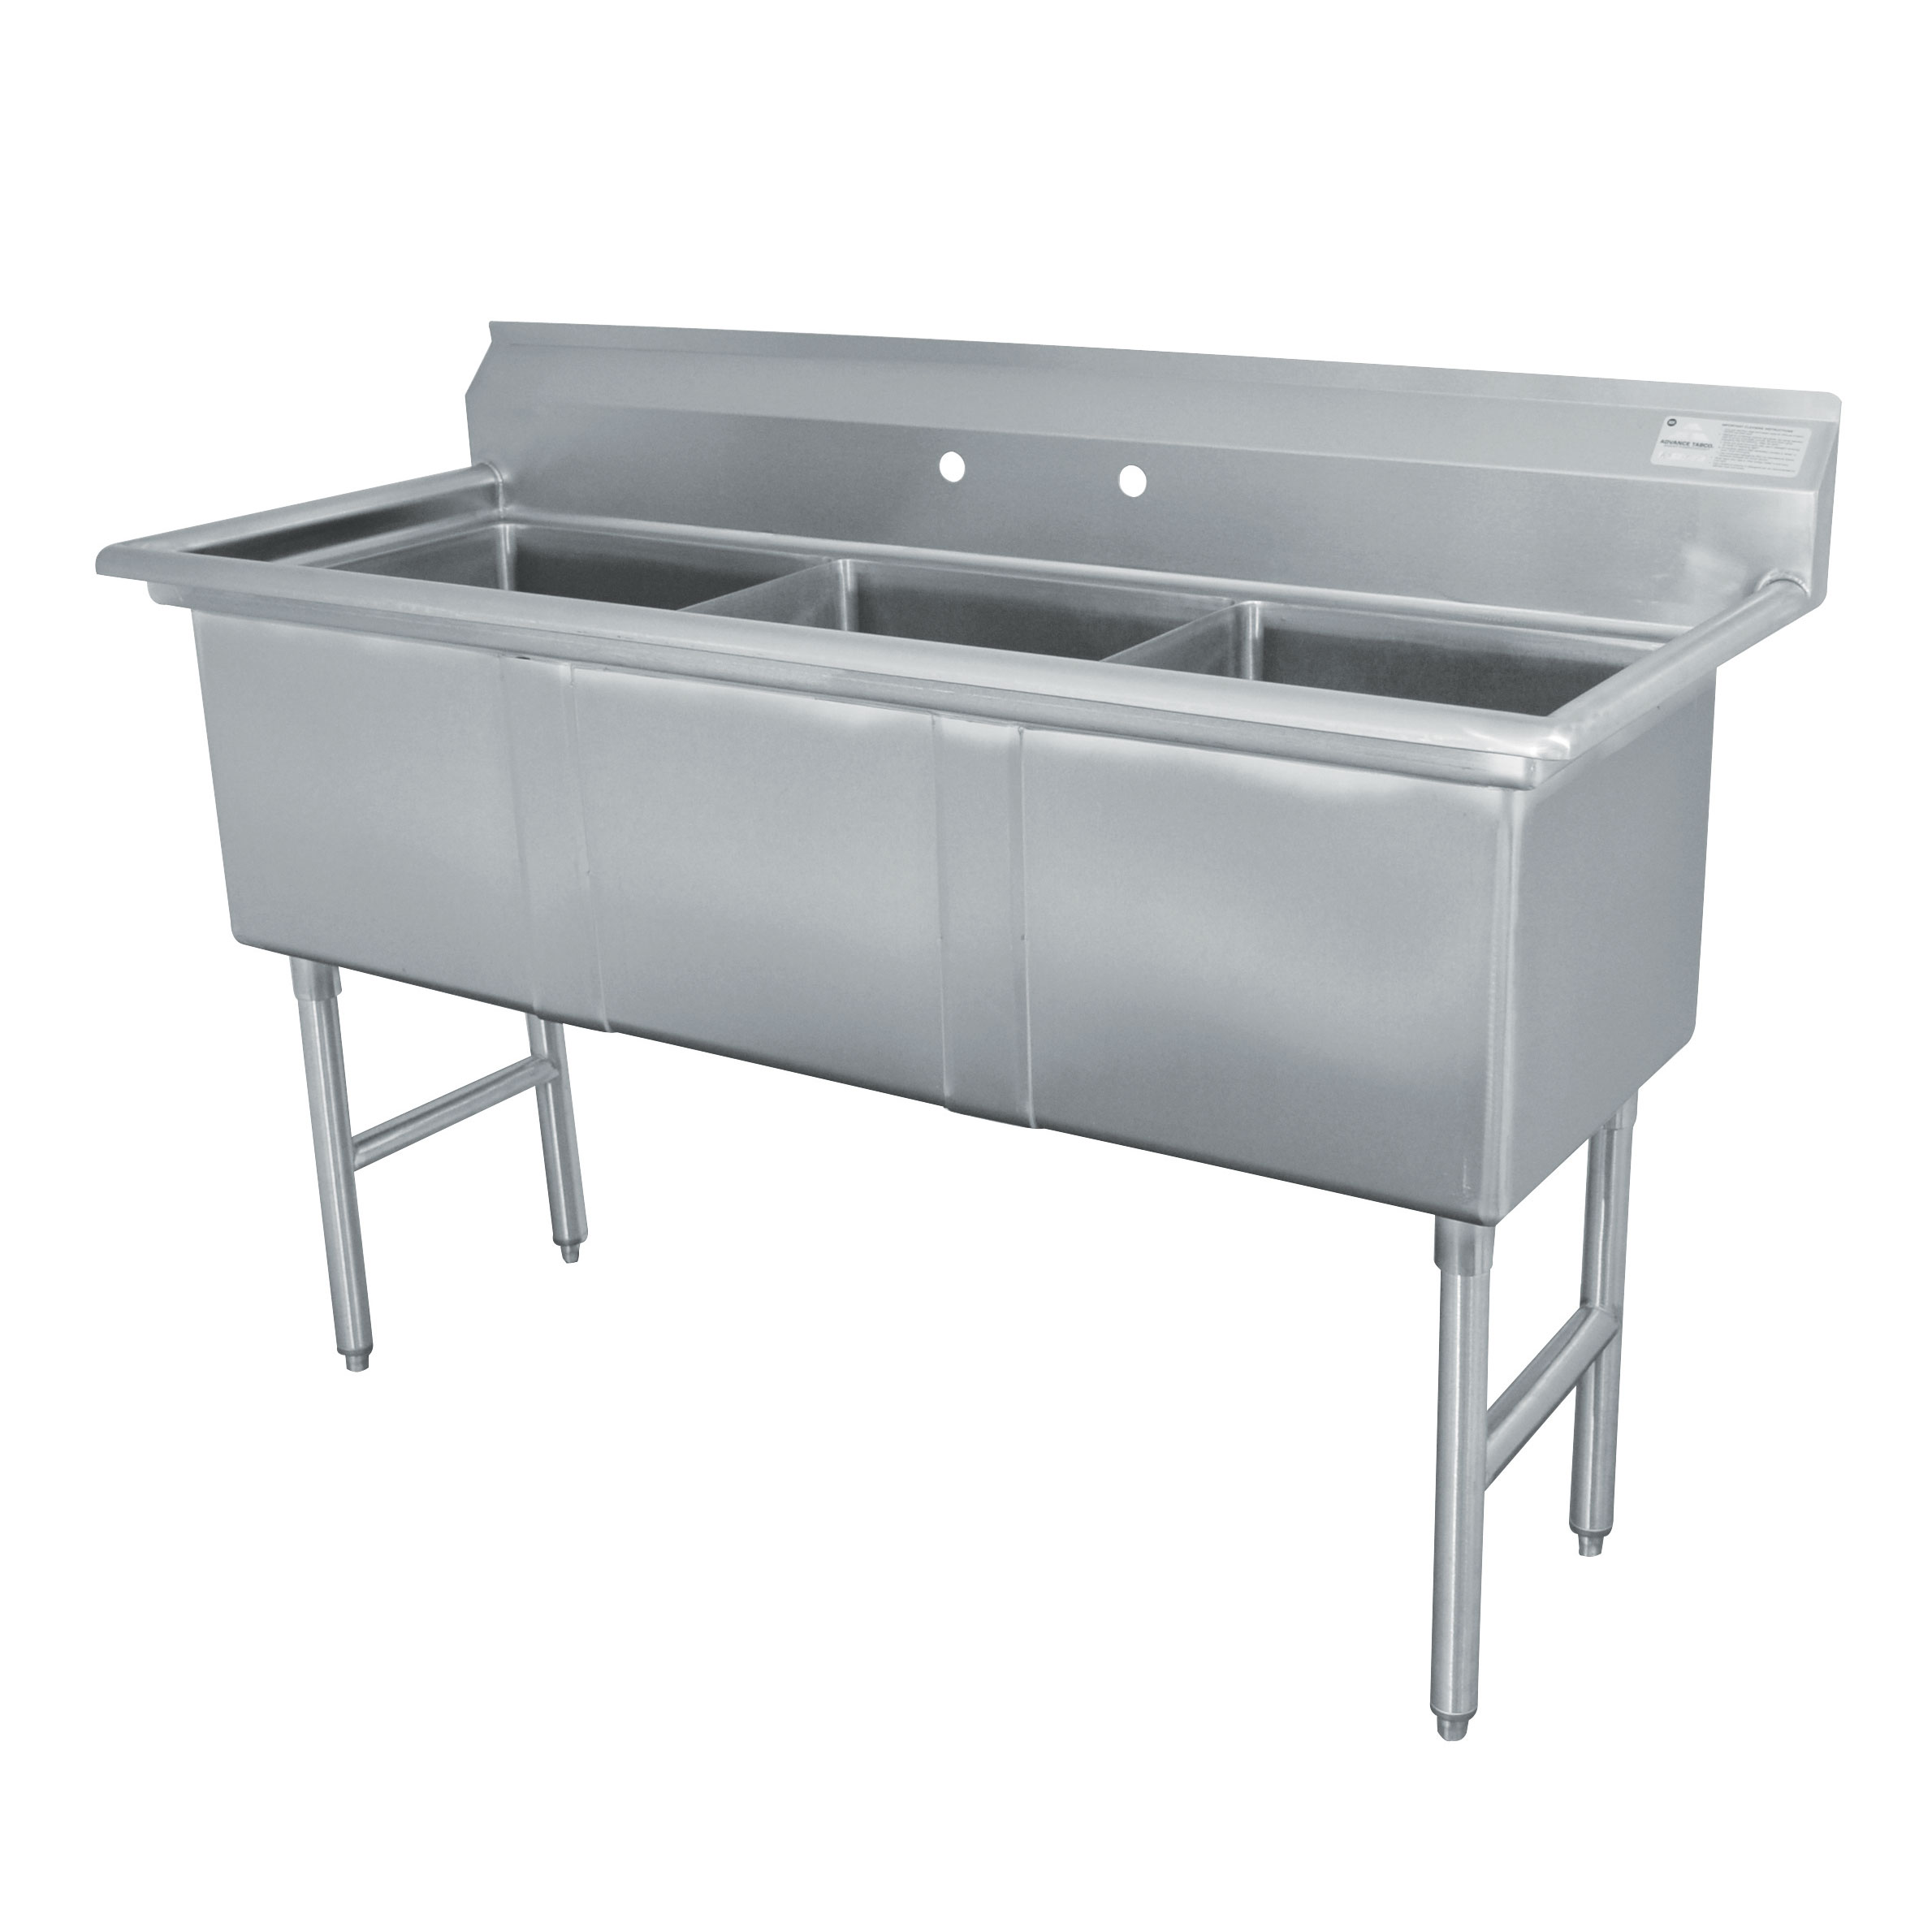 Advance Tabco FC-3-1818 sink, (3) three compartment